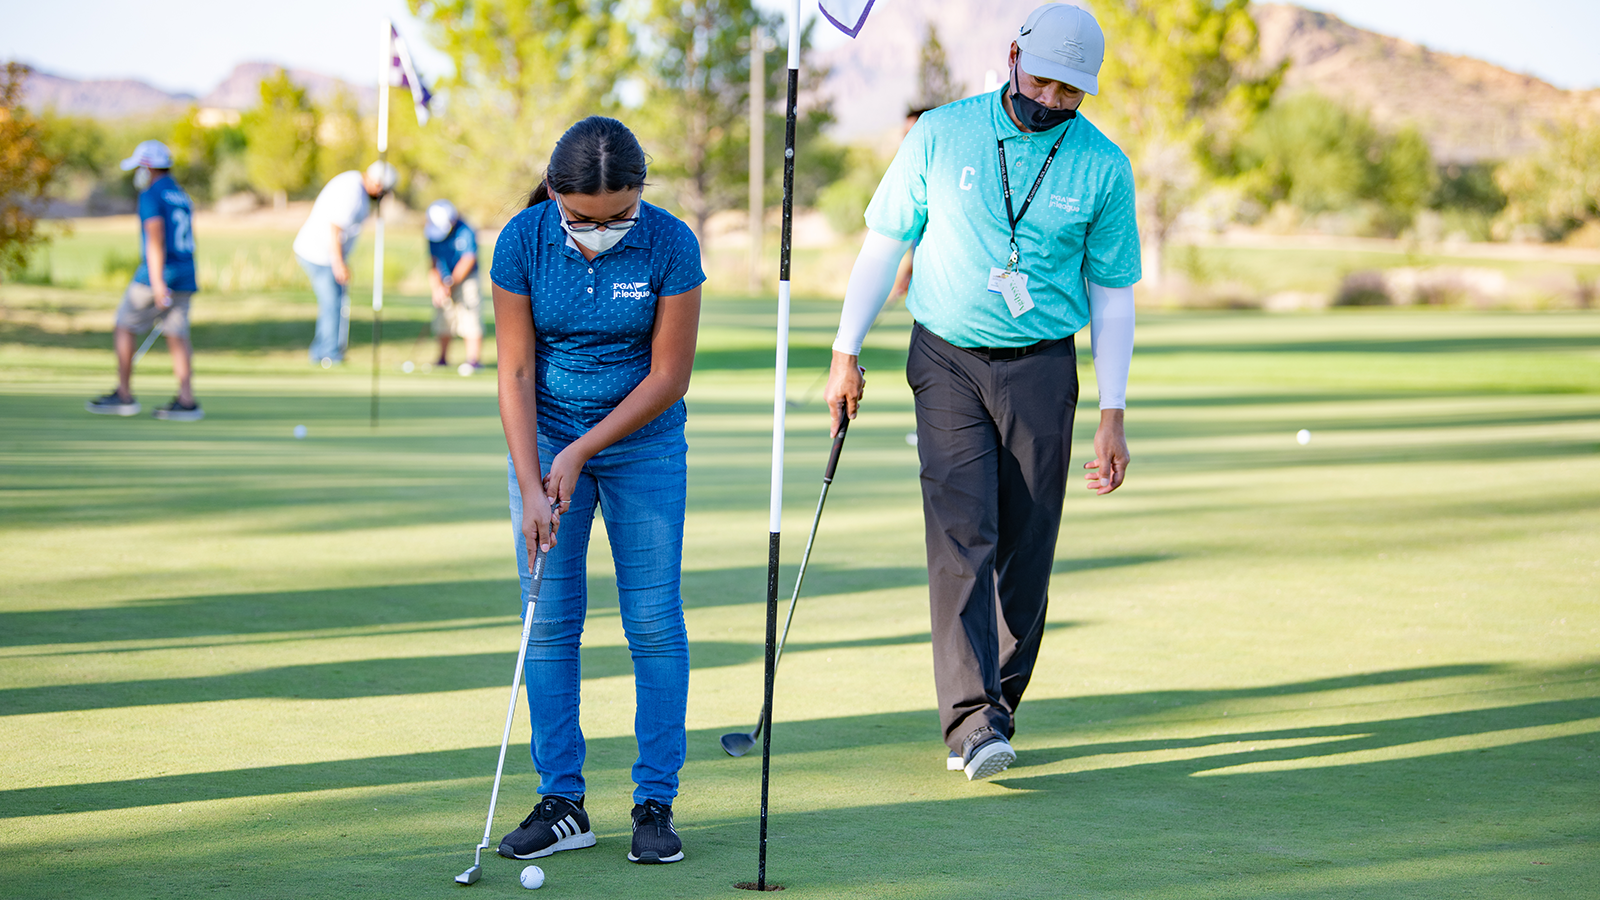 PGA Associates on a Mission to Create Team Golf Opportunities Through Scholarships